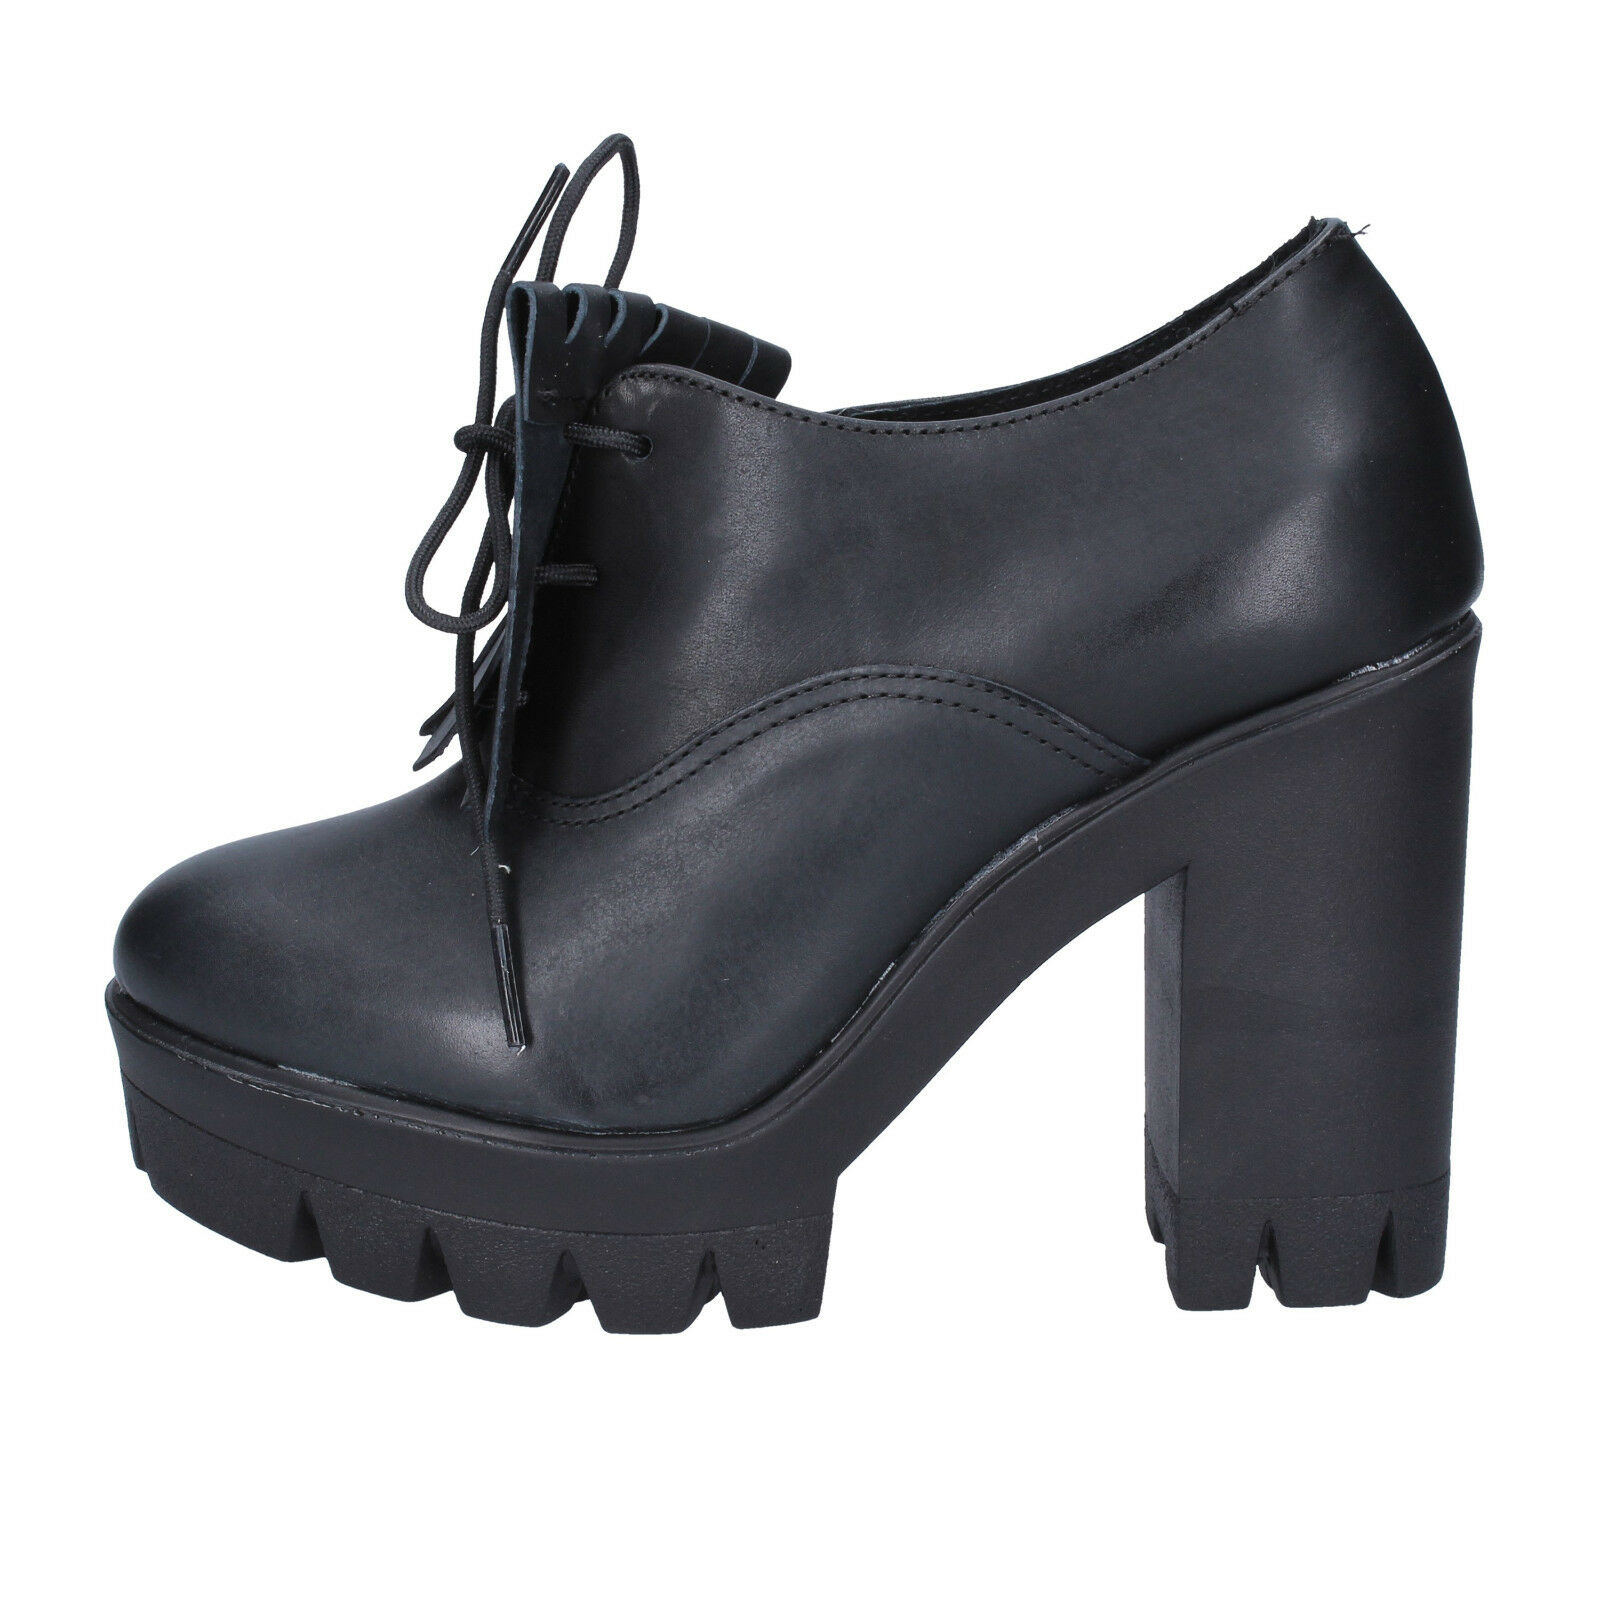 womens shoes LSD BY DIENNEG () 2 () DIENNEG ankle boots black leather BX618-35 5c95e0